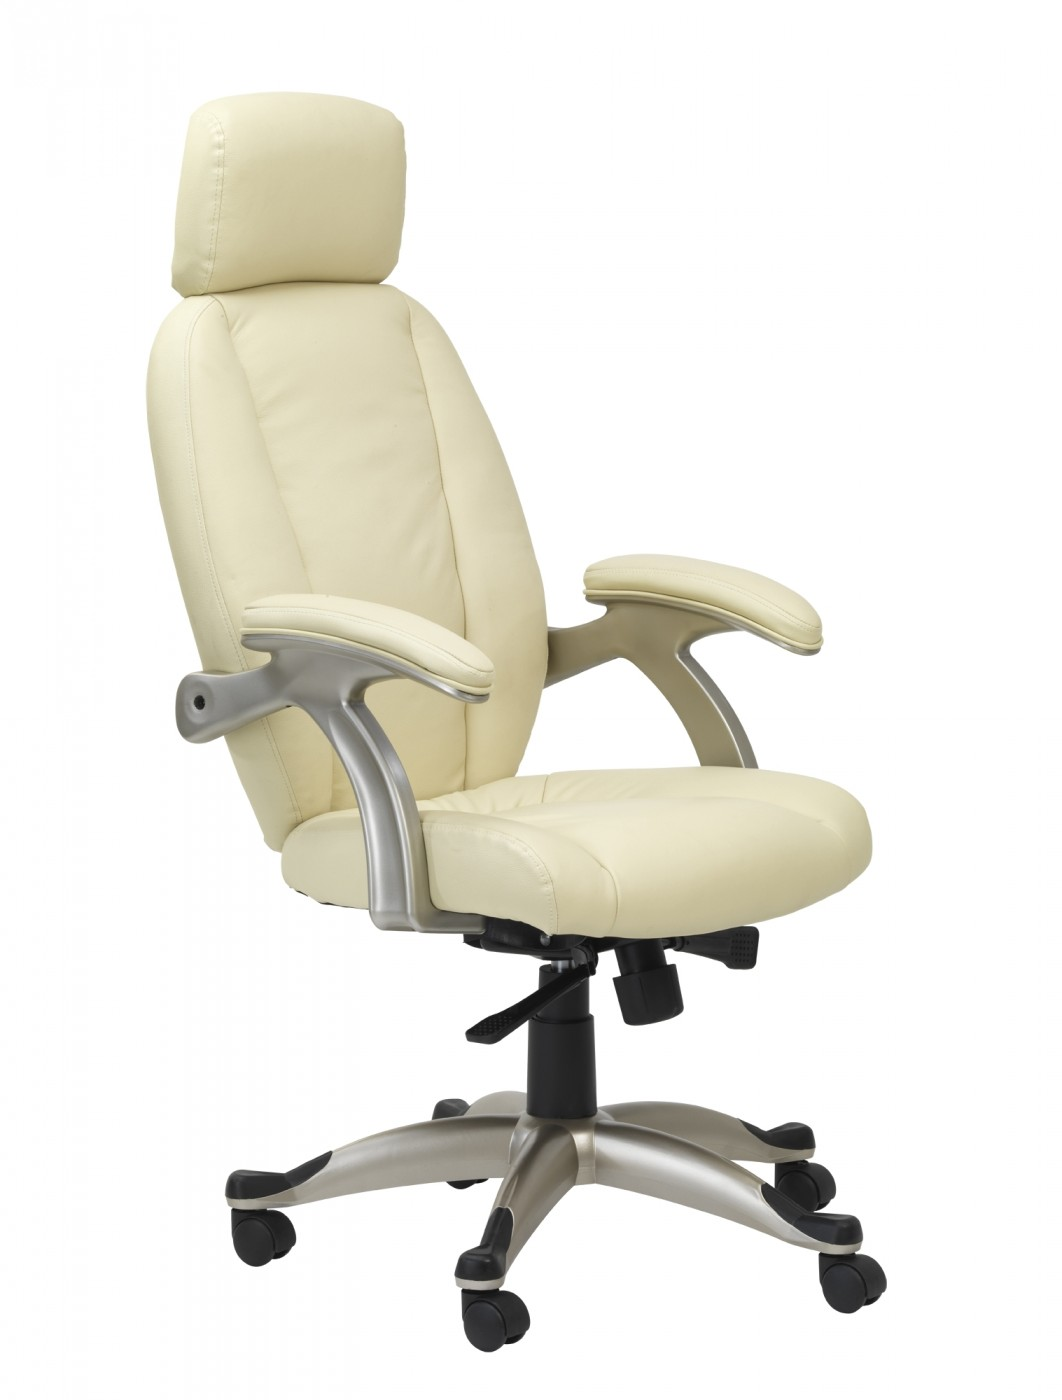 alphason northland brown high back real leather executive office chair. aoc6355-l alphason bentley high back leather faced executive chair - enlarged view northland brown real office r